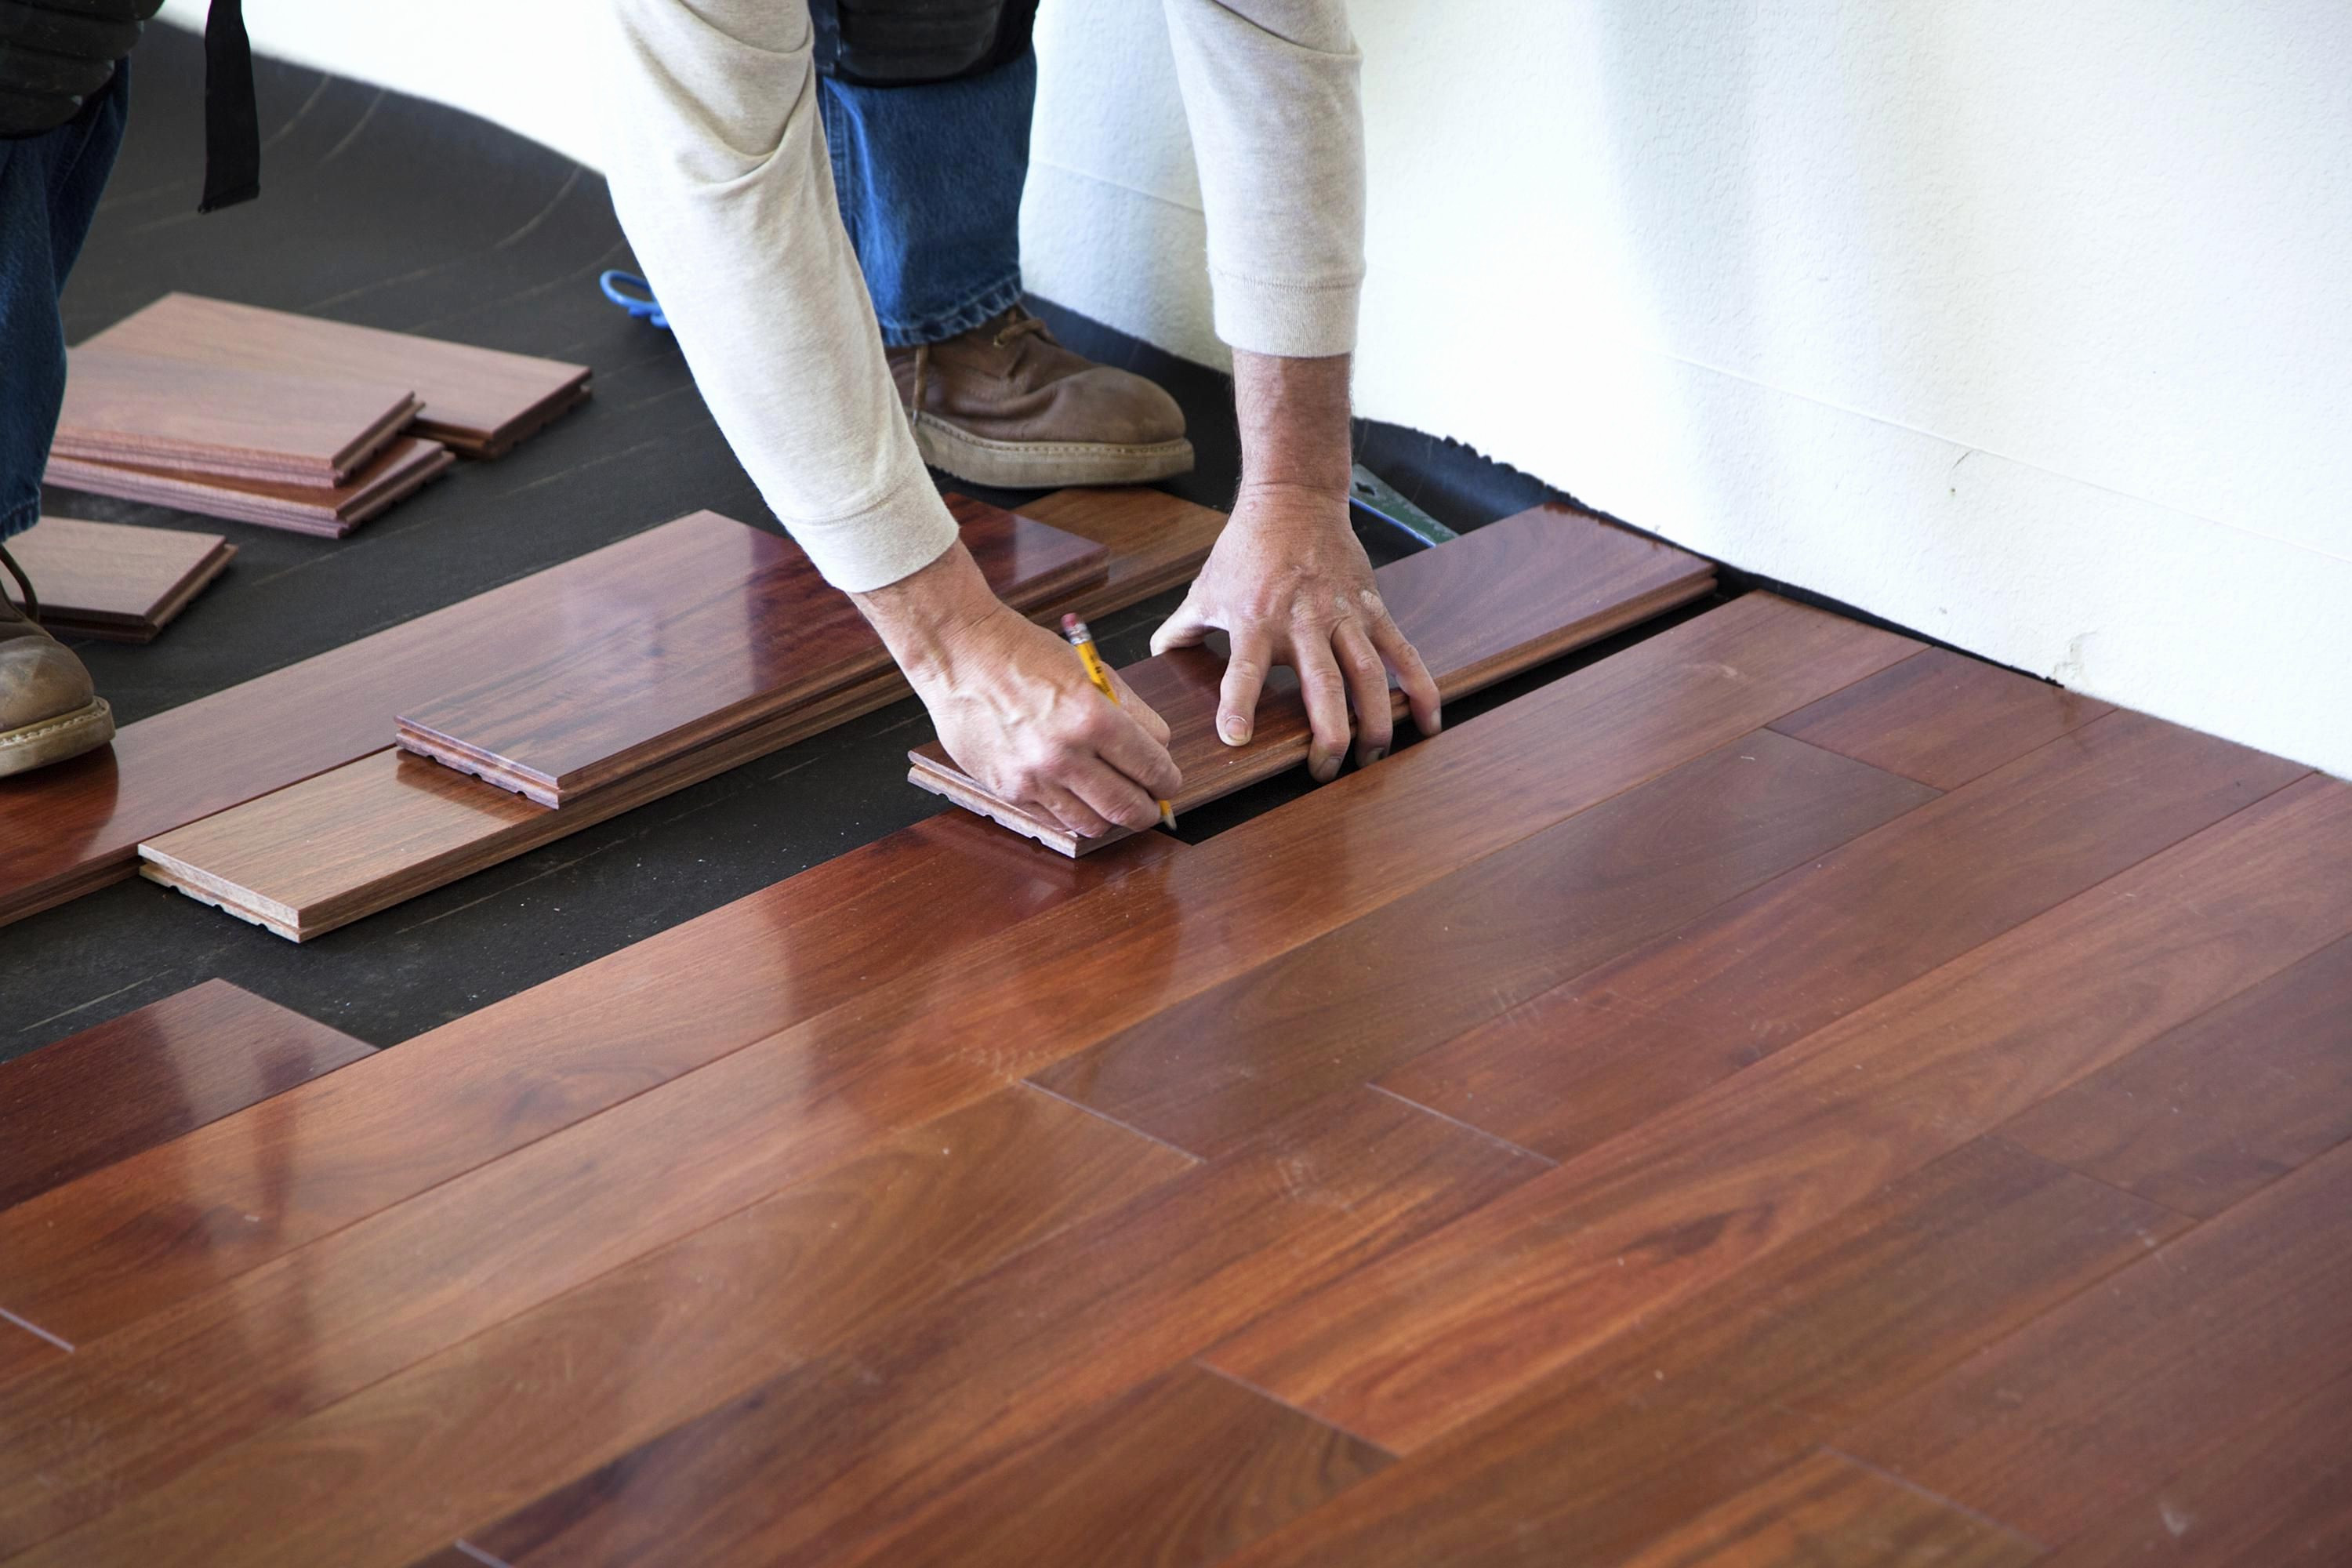 28 Spectacular Gaps In Prefinished Hardwood Flooring 2021 free download gaps in prefinished hardwood flooring of 19 unique how much does it cost to refinish hardwood floors gallery within 50 best how to refinish hardwood floors without sanding pics 50